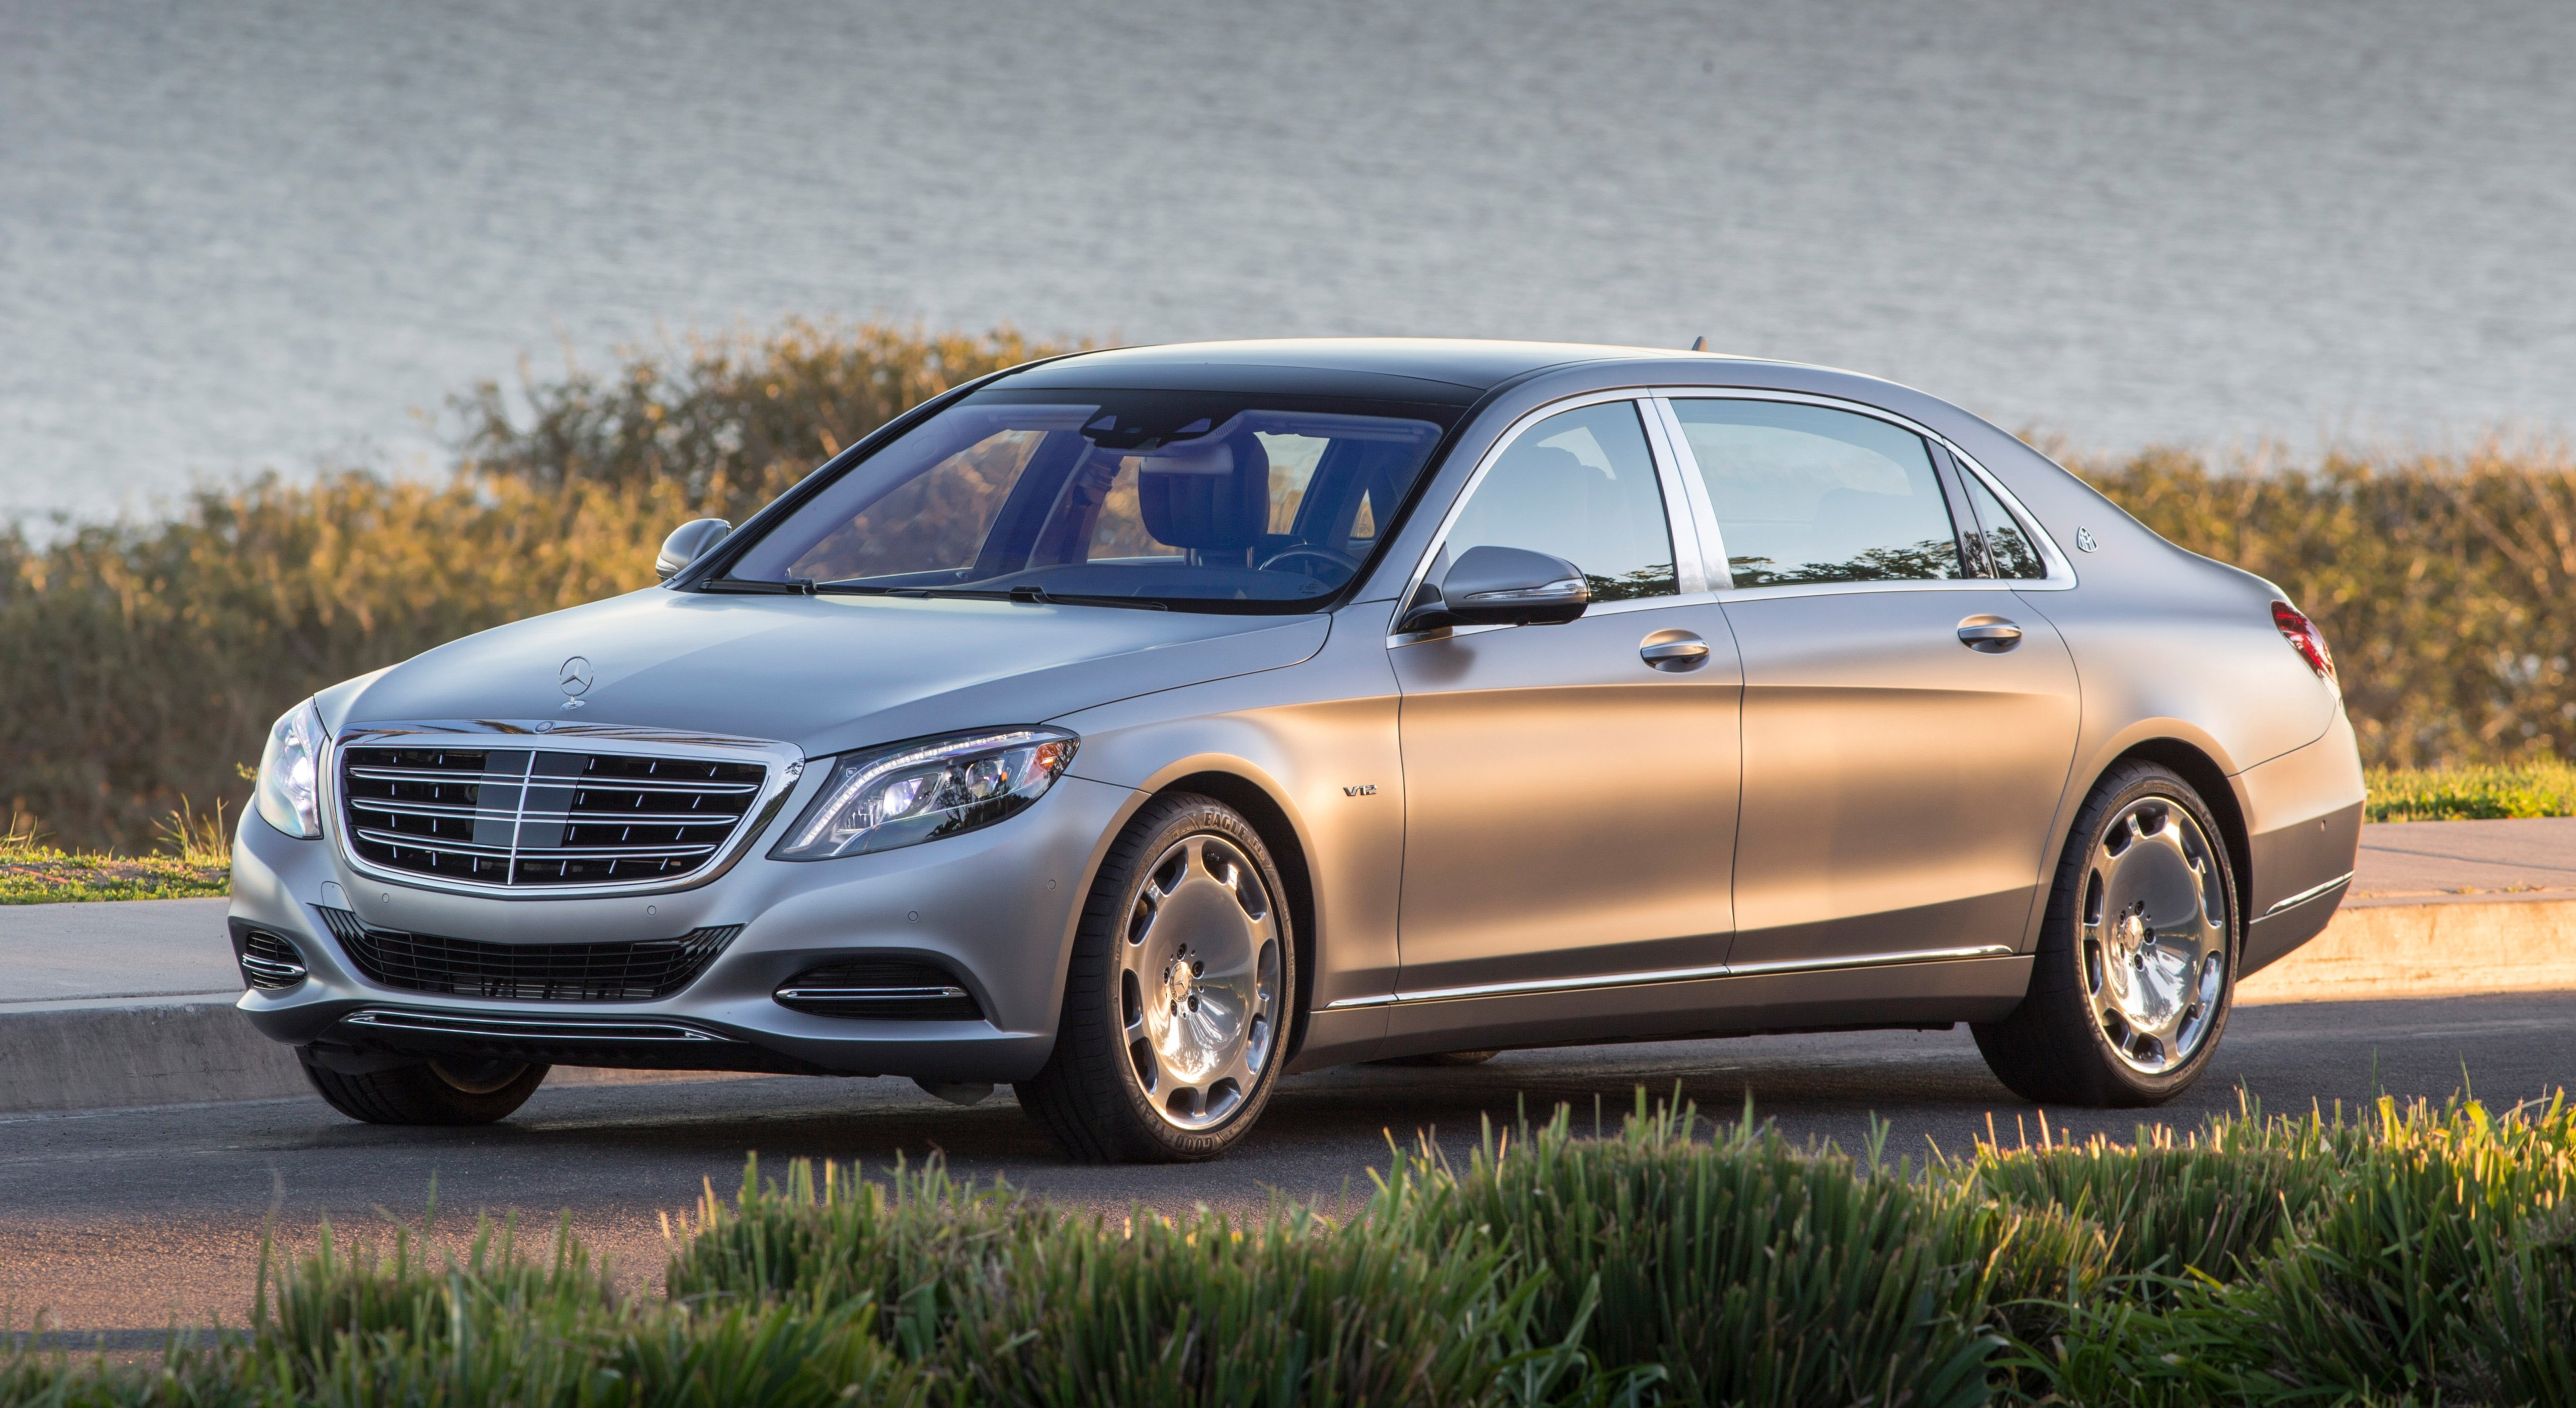 Mercedes Maybach S600 HD wallpapers download 5120x2798